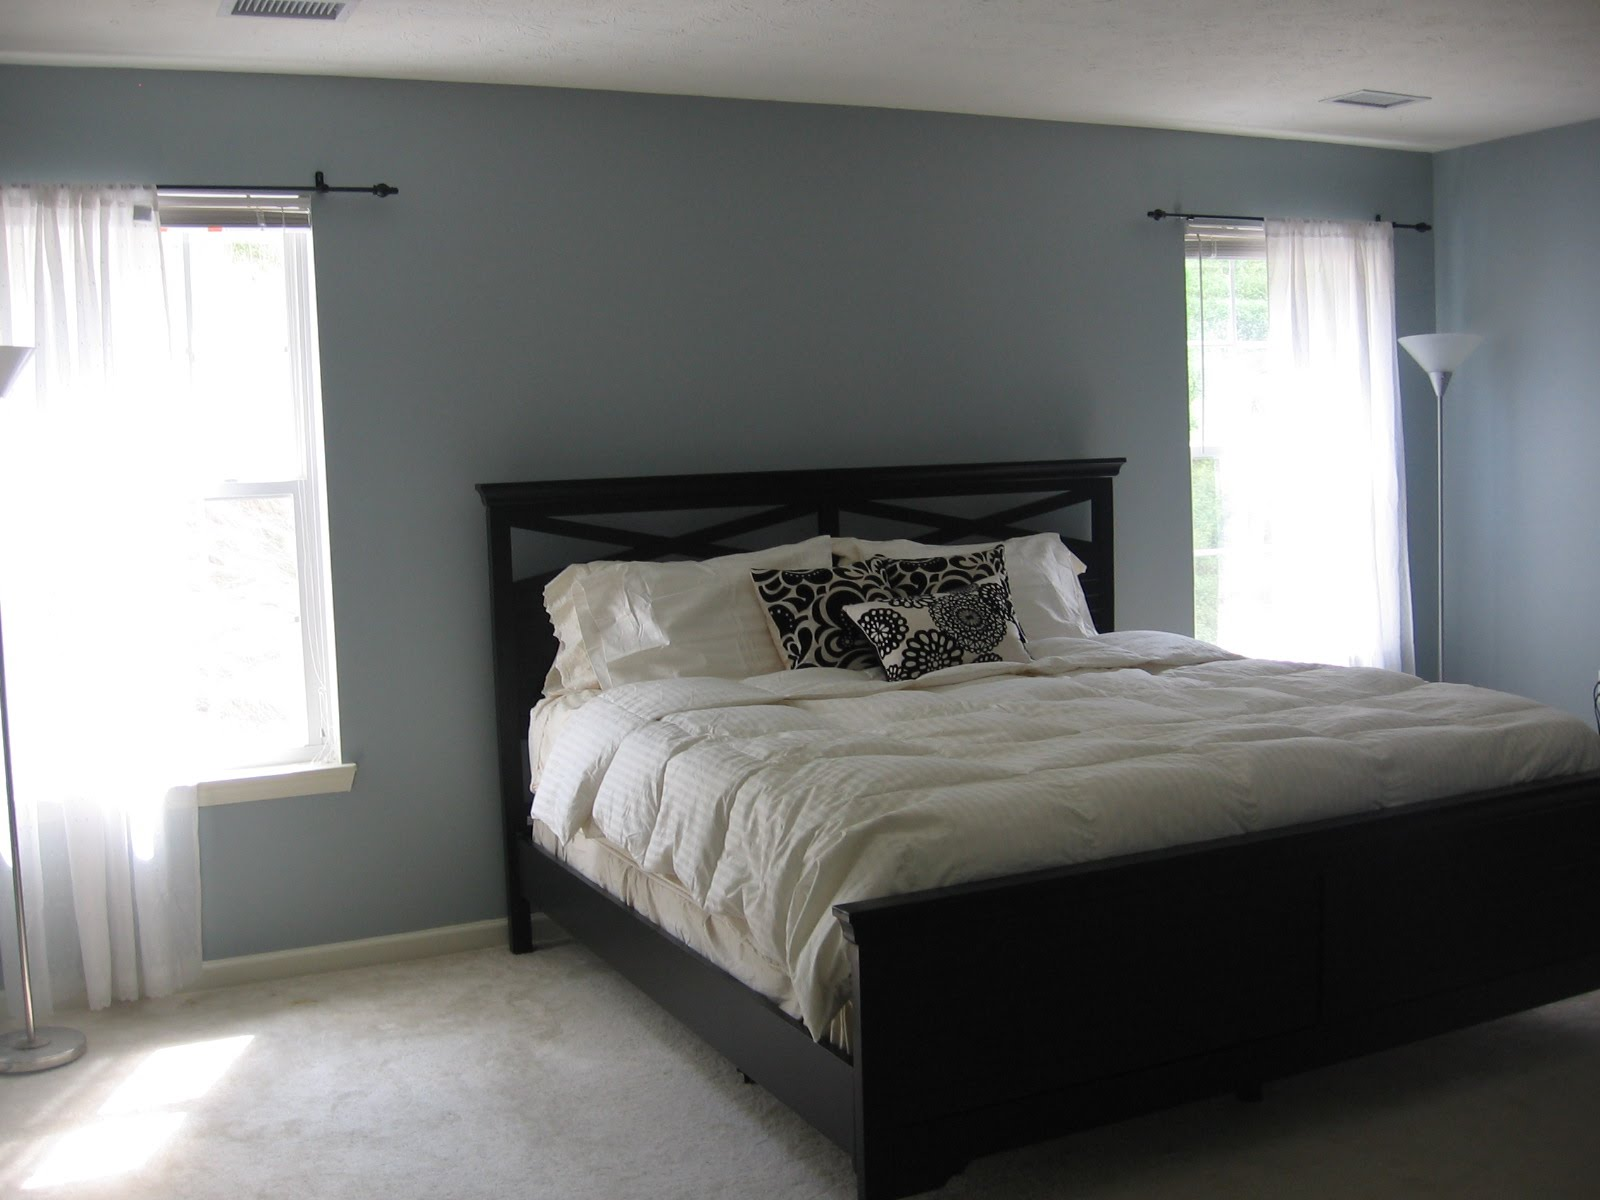 Bedroom Colors Grey Blue interesting bedroom colors grey blue bedroomcheery ideas master